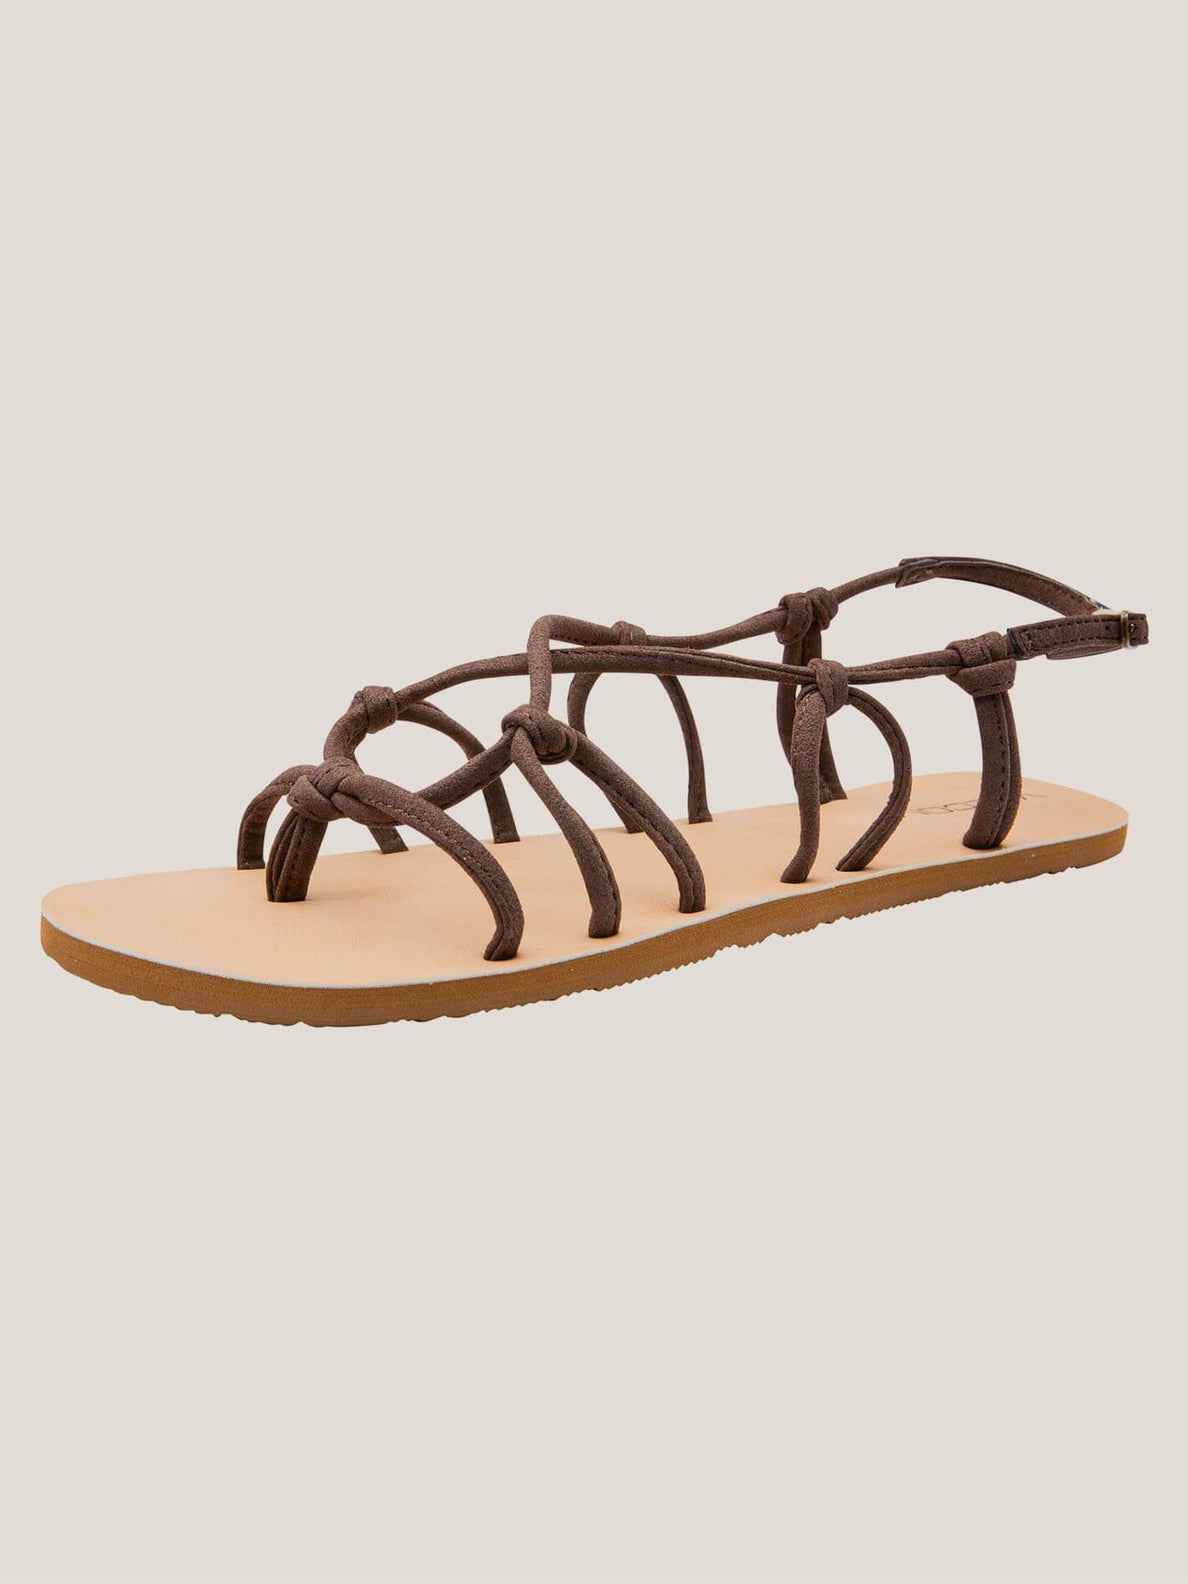 Whateversclever Sandals In Brown, Back View